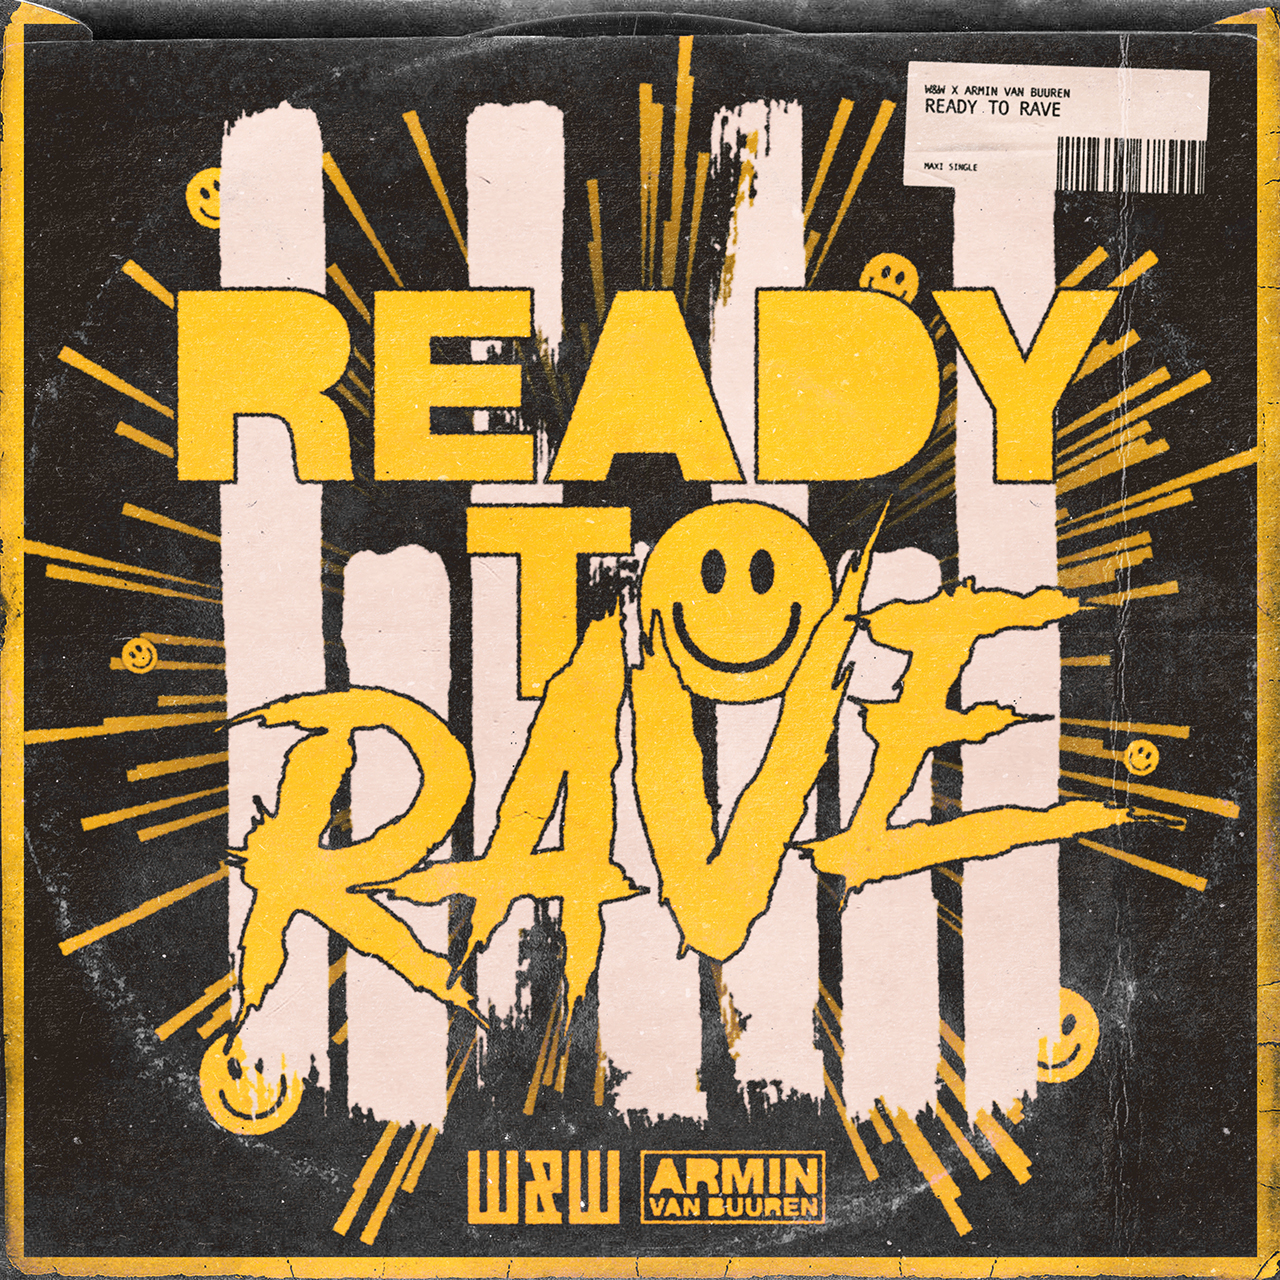 W&W And Armin van Buuren 'Ready To Rave' With Huge New Collaboration